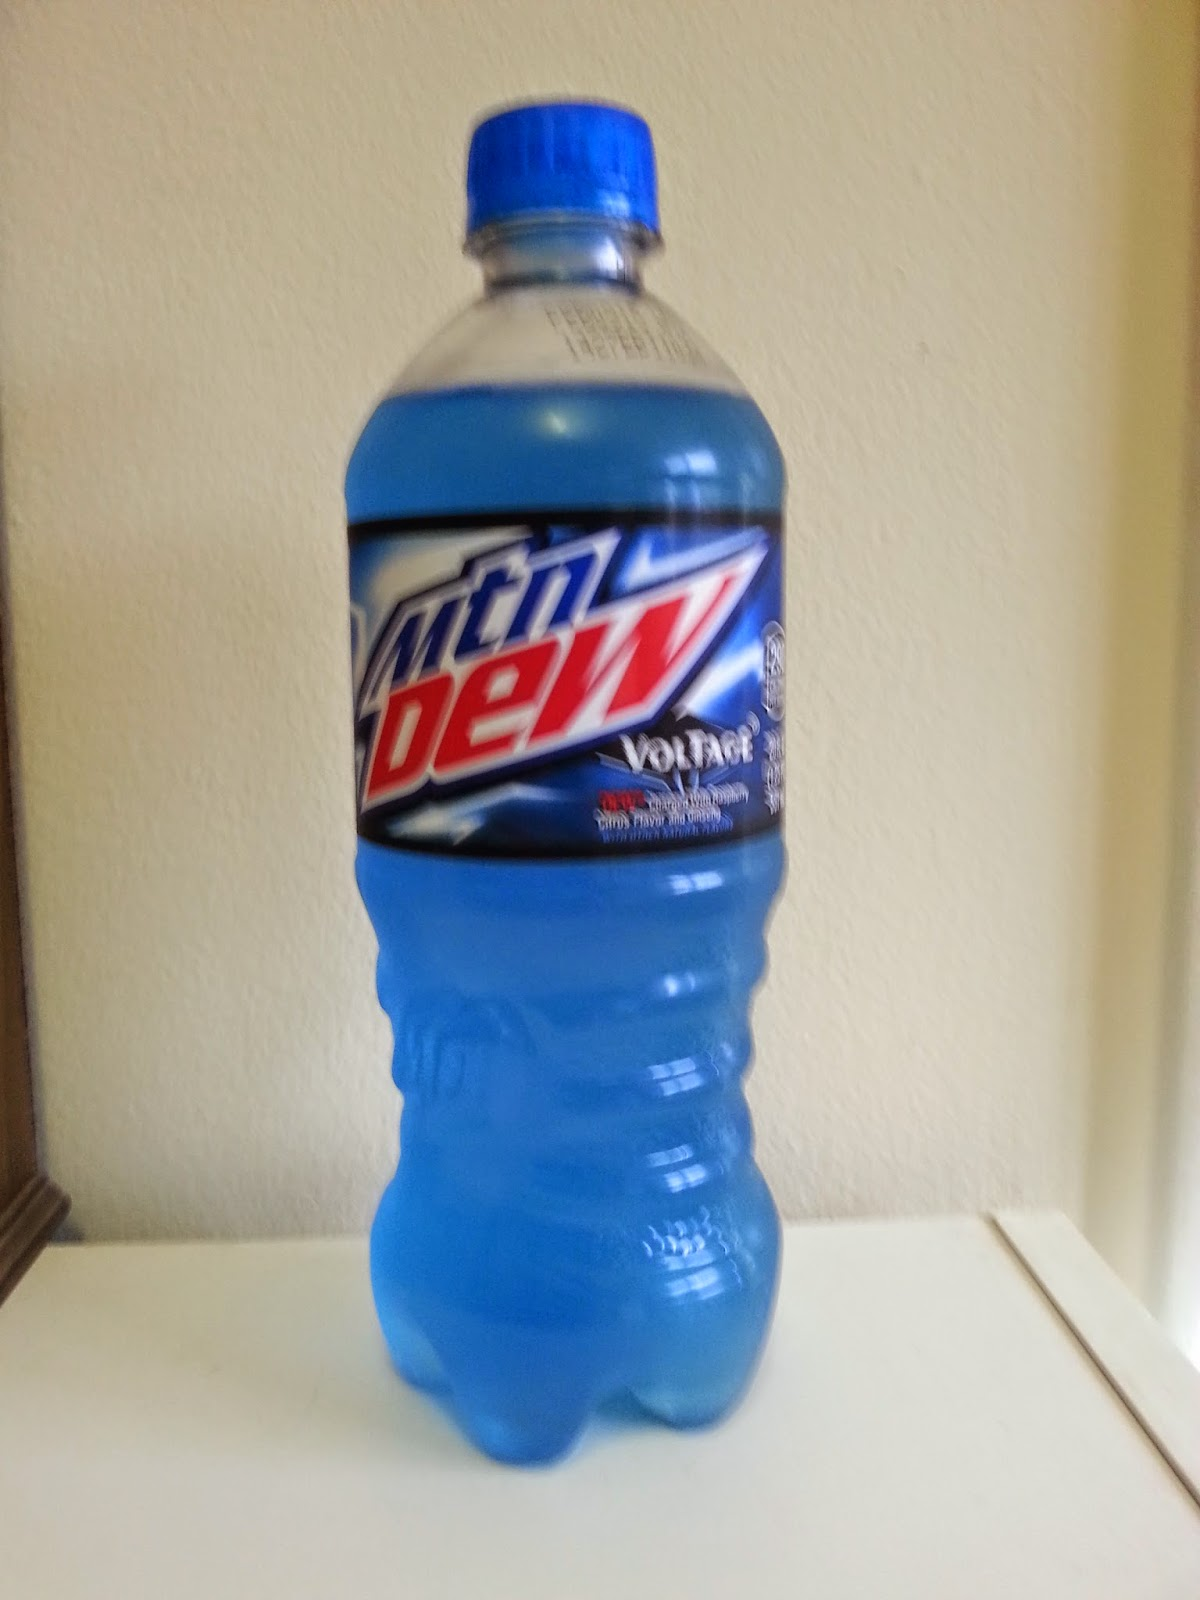 Mountain Dew Voltage Pictures to Pin on Pinterest - PinsDaddy